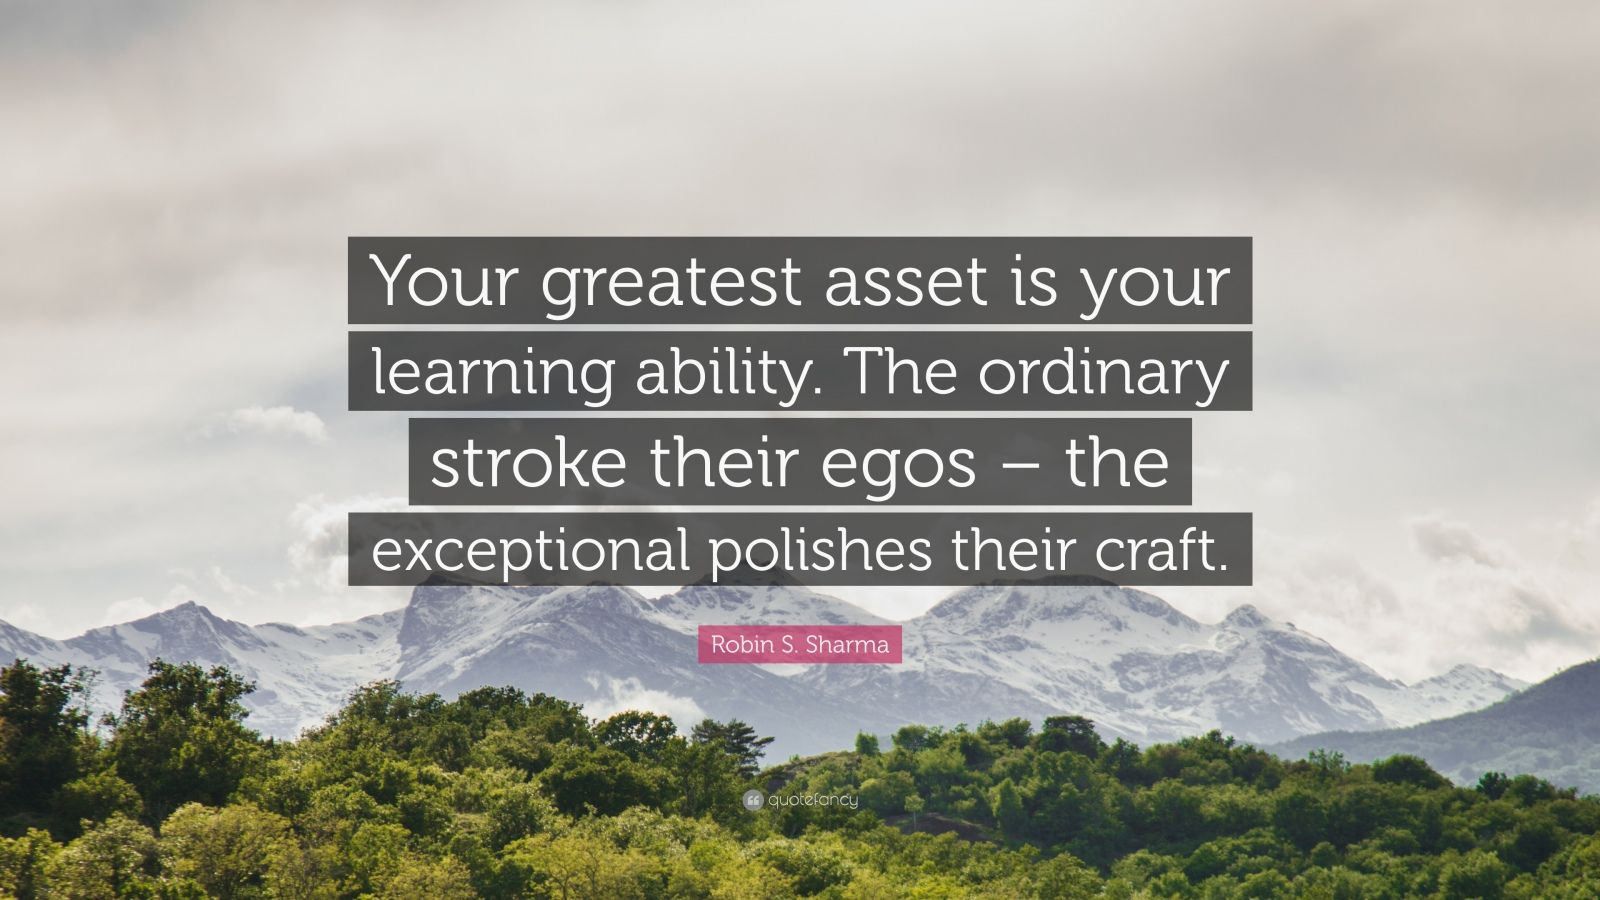 """Robin S. Sharma Quote: """"Your greatest asset is your learning ability. The ordinary stroke their egos – the exceptional polishes their craft."""""""